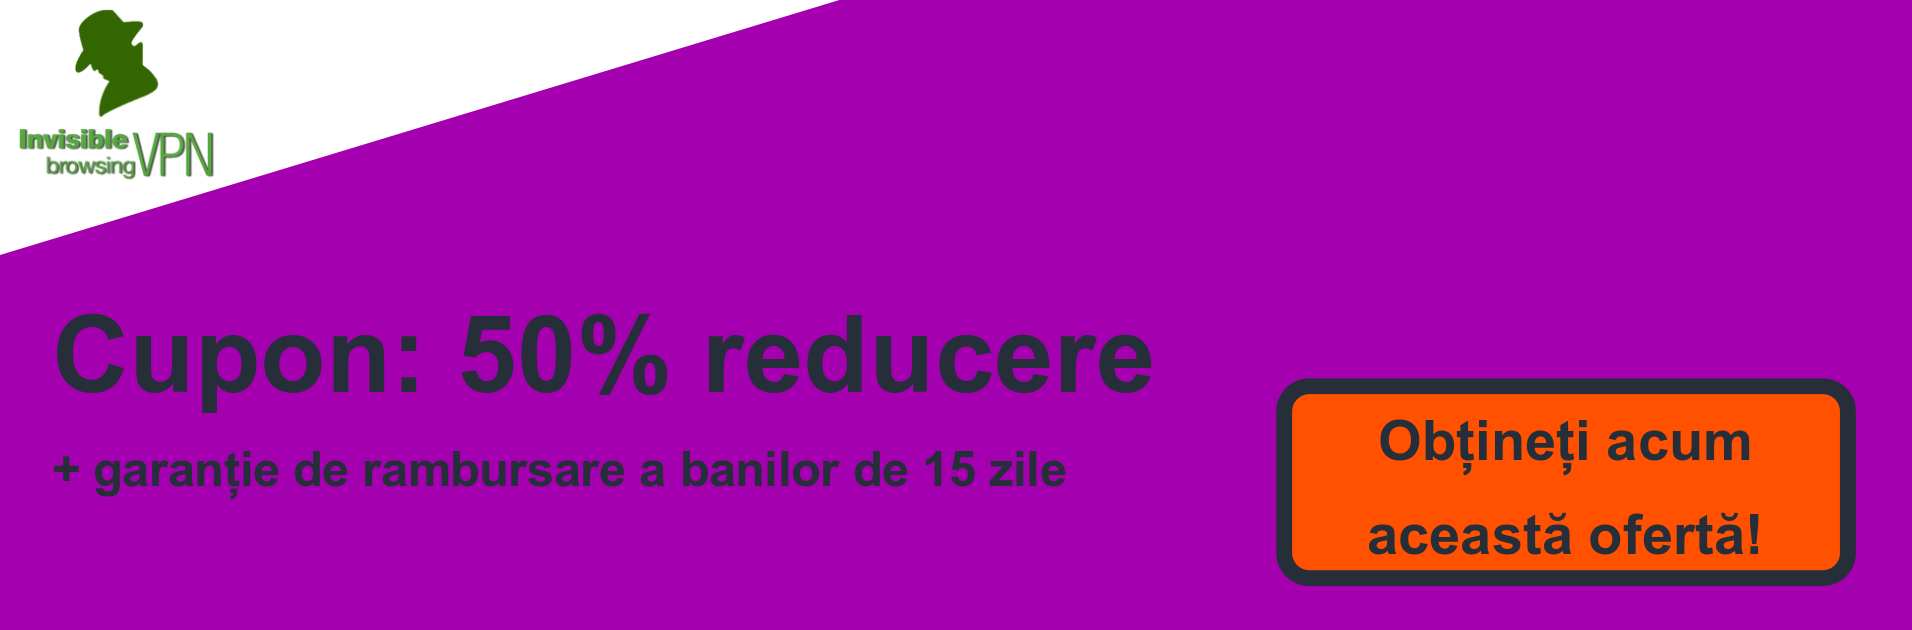 Banner cupon ibVPN - 50% reducere